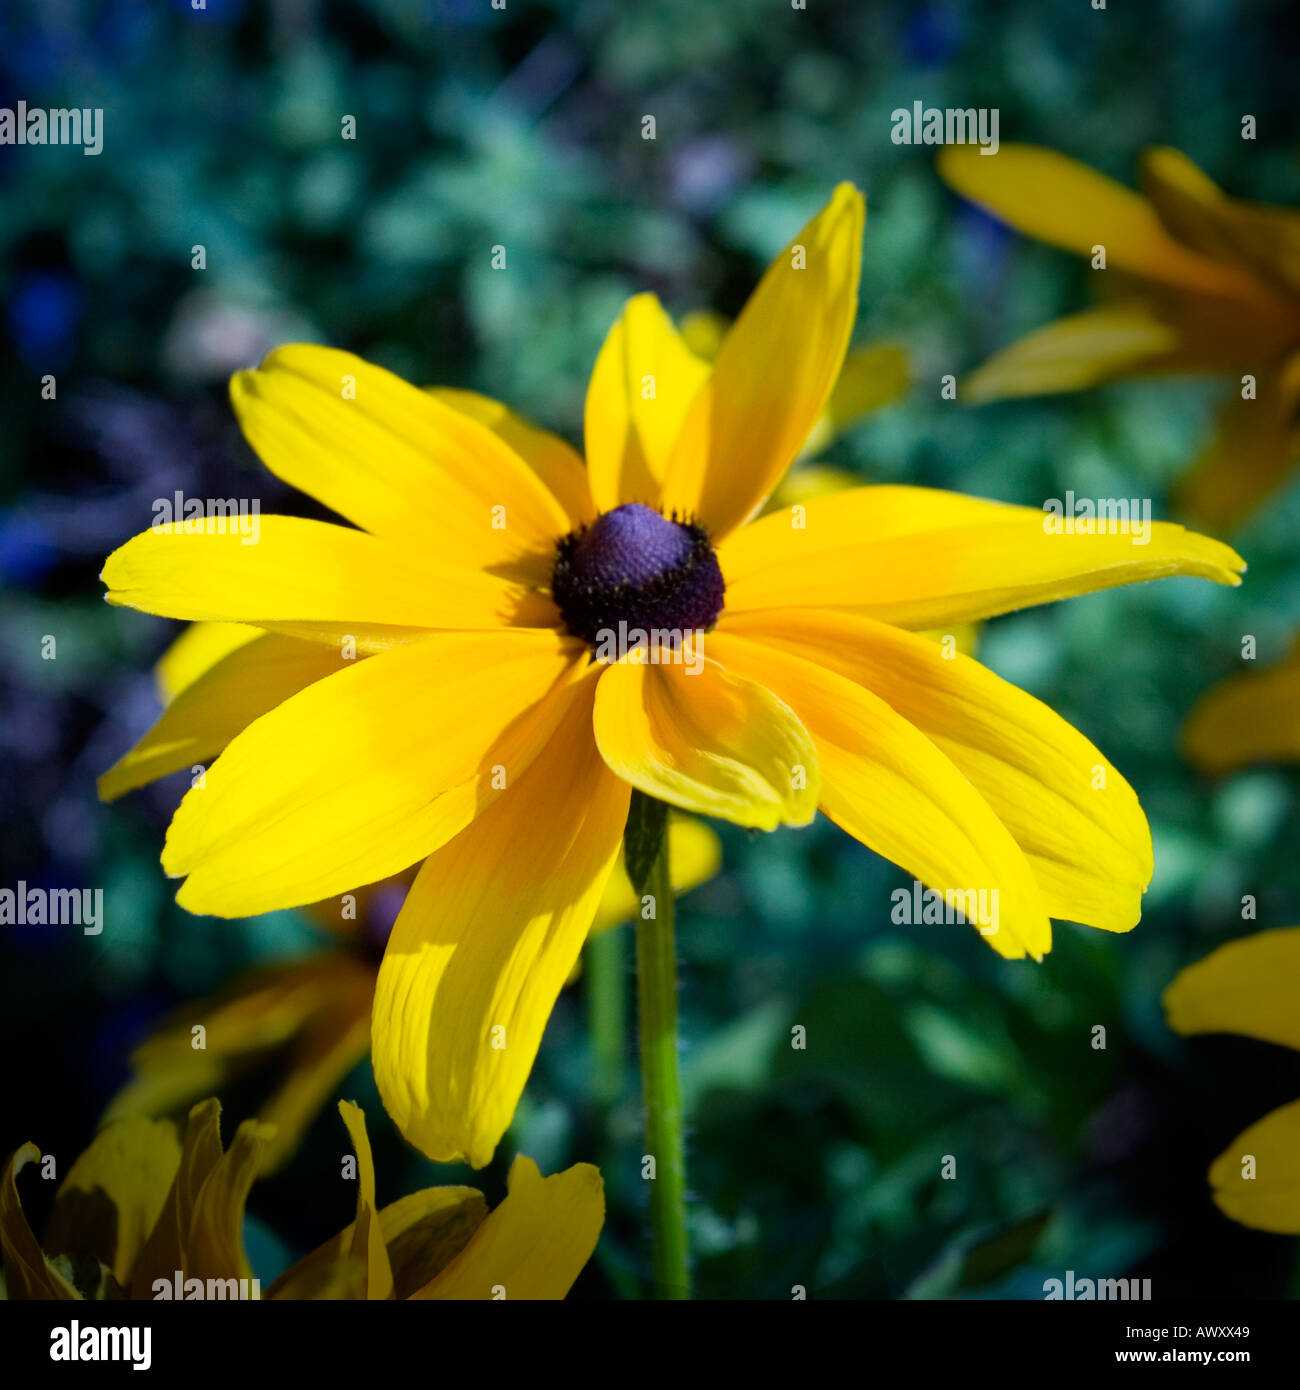 Bright yellow flower with purple and black center stock photo bright yellow flower with purple and black center mightylinksfo